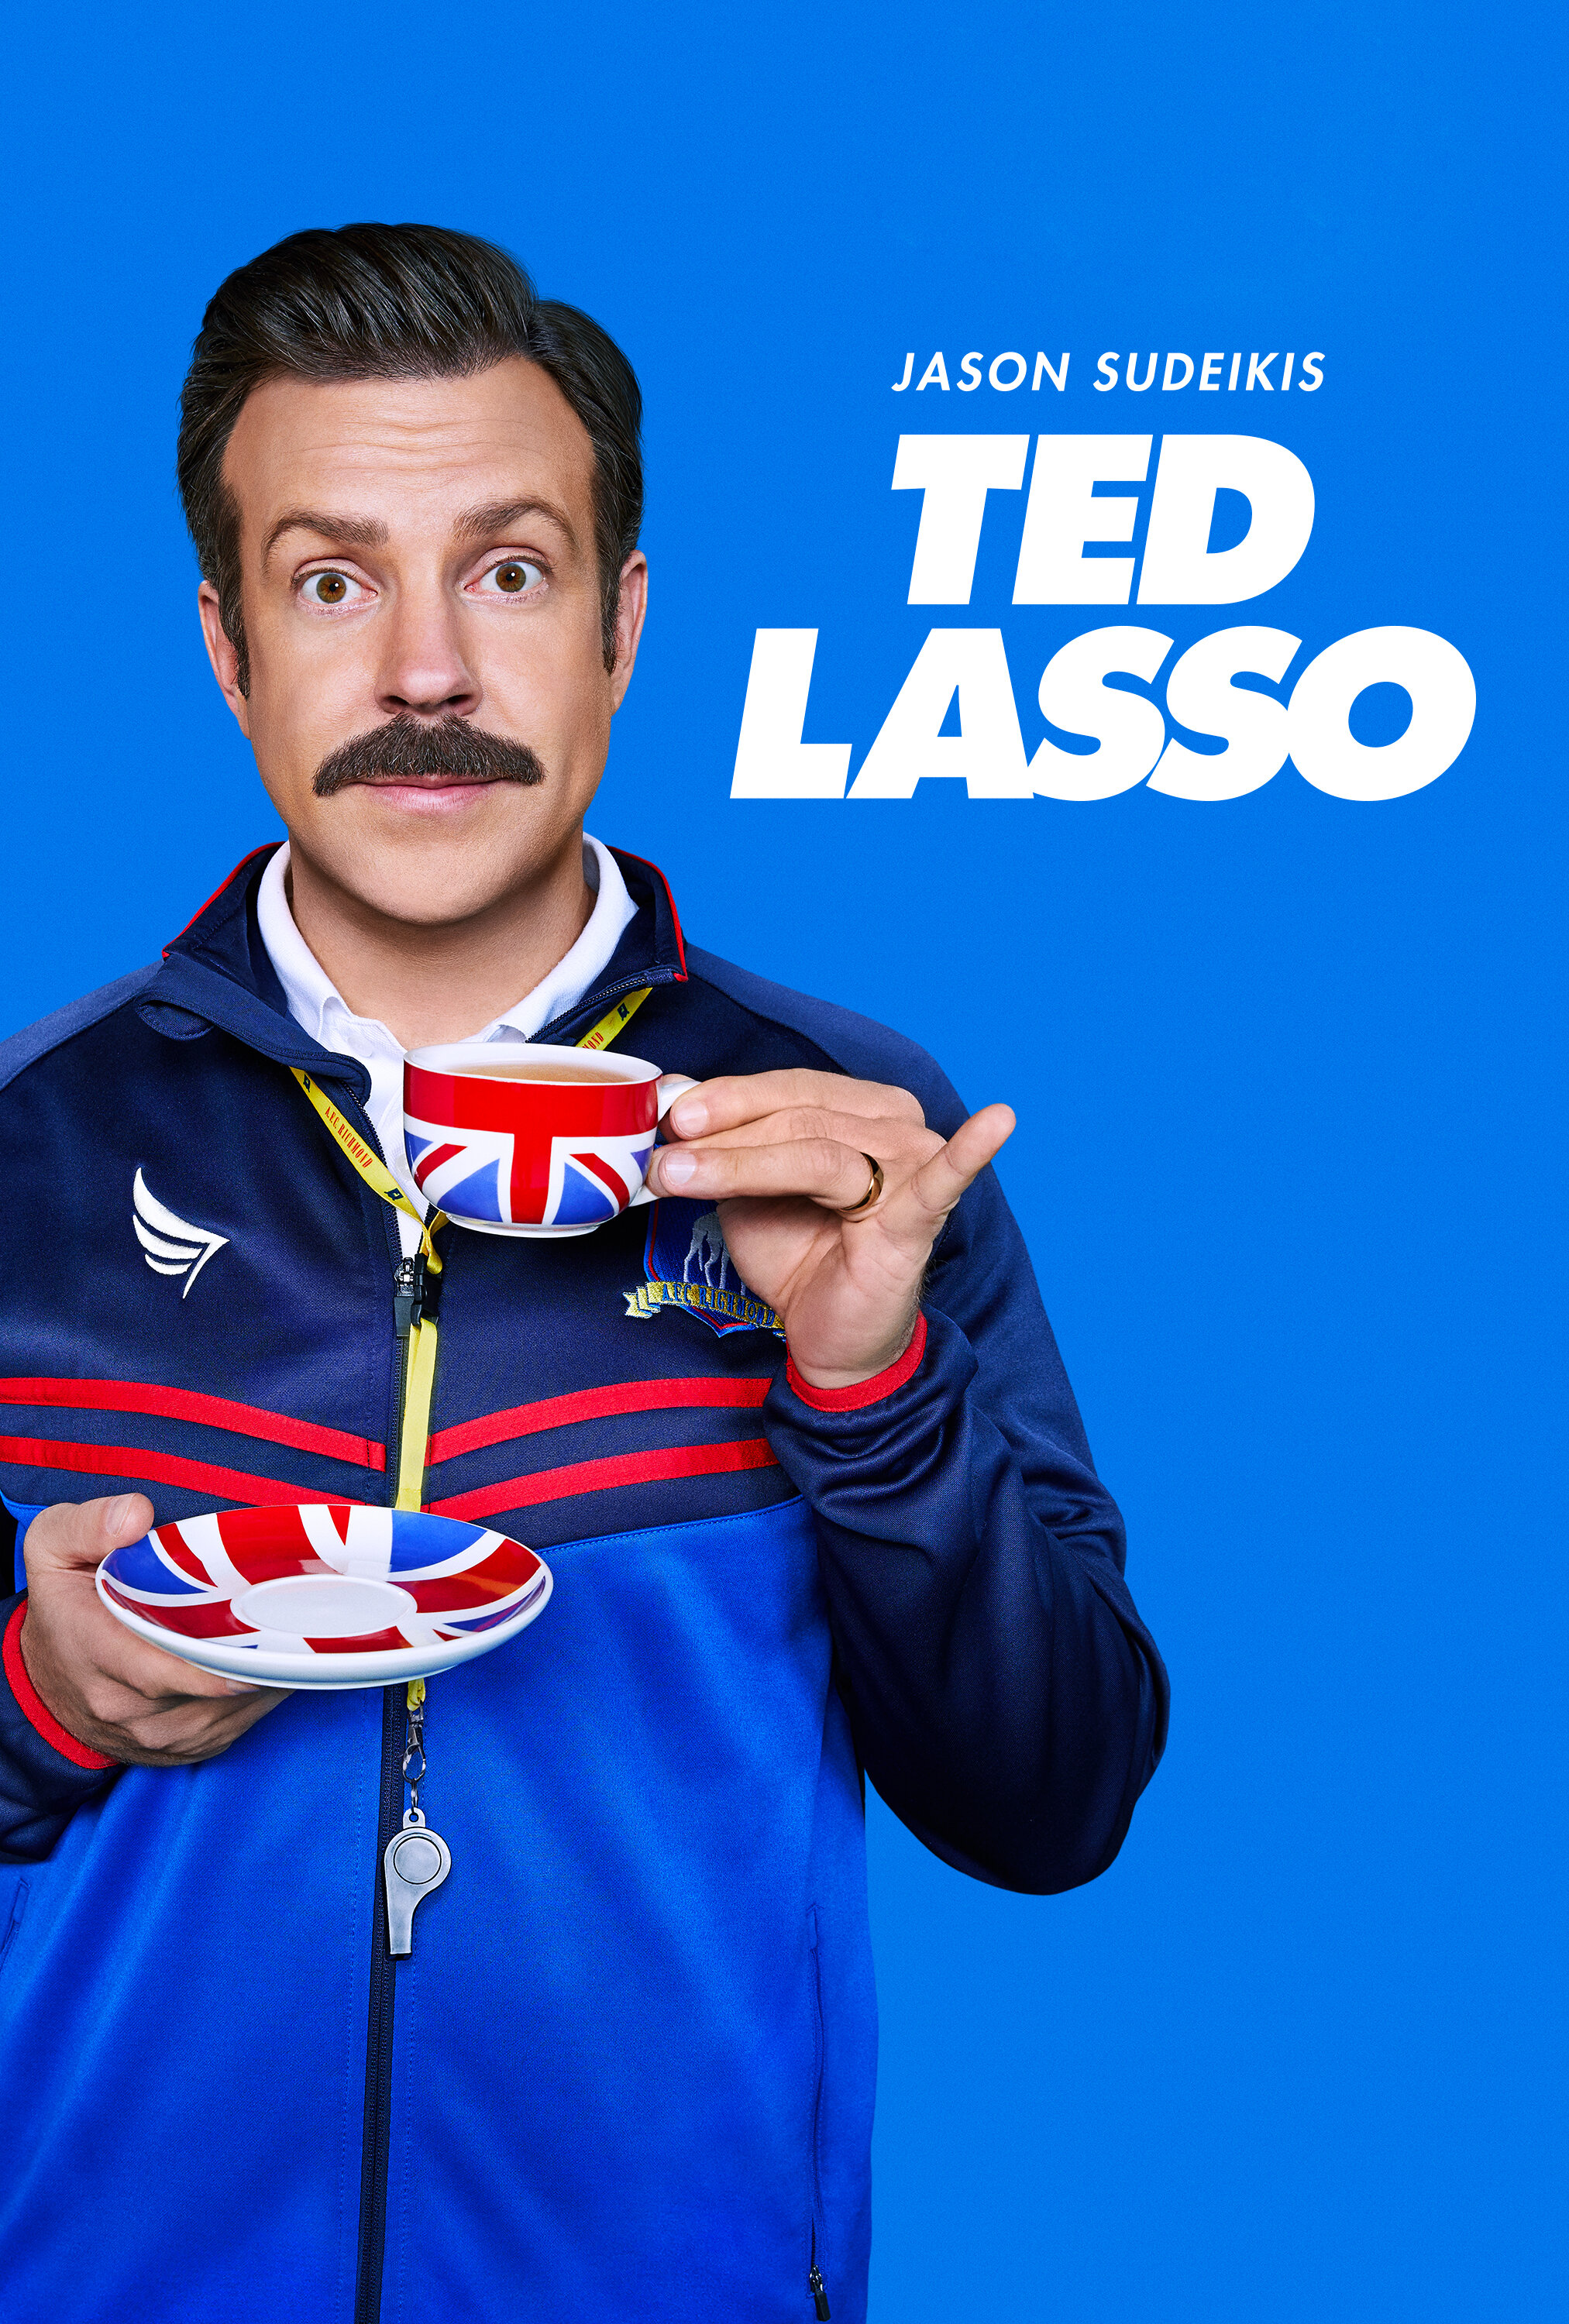 Poster of TV show Ted Lasso